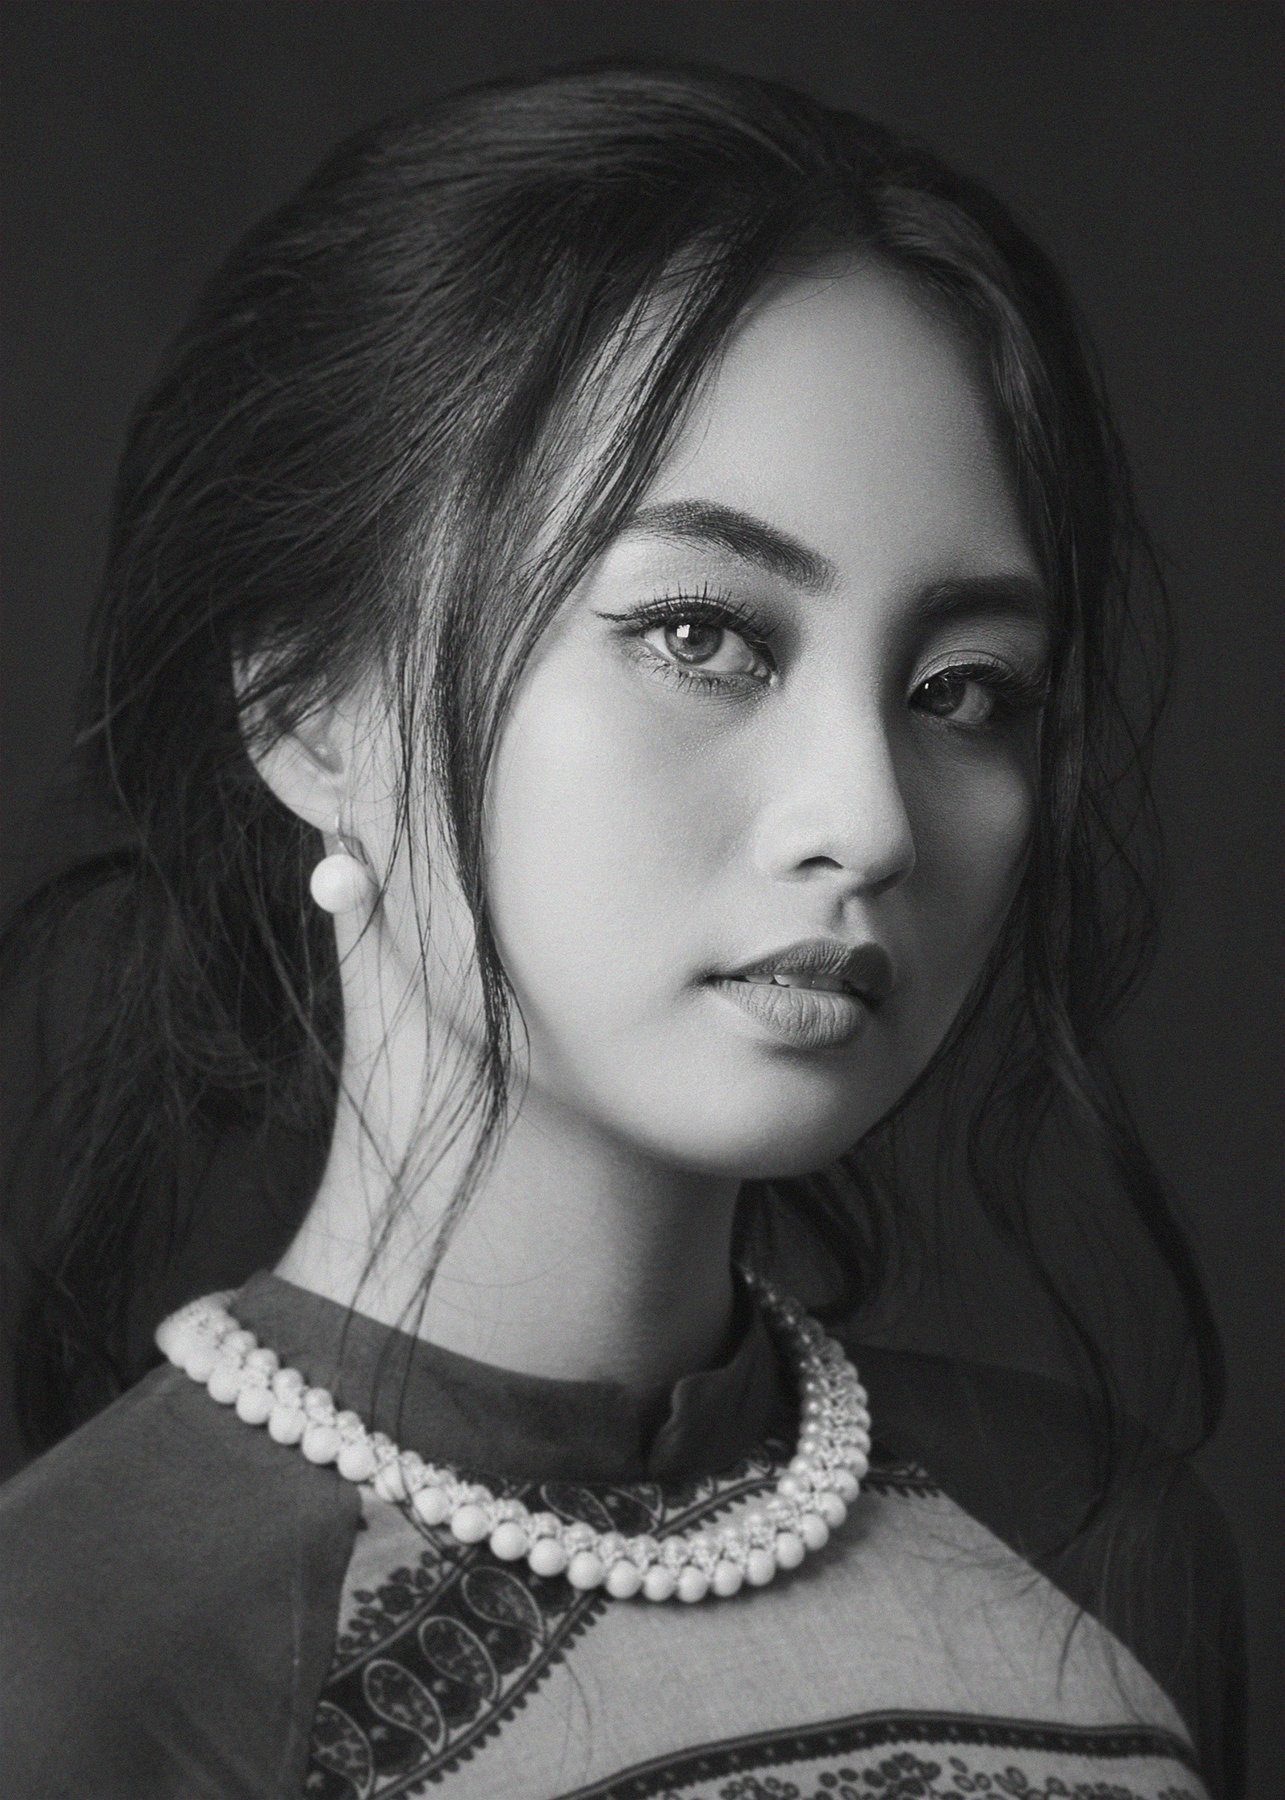 people, portrait, girl, asian, vietnam, vietnamese, face, young, beauty, glamour, eyes, bw, black and white, monochrome, Hoang Viet Nguyen